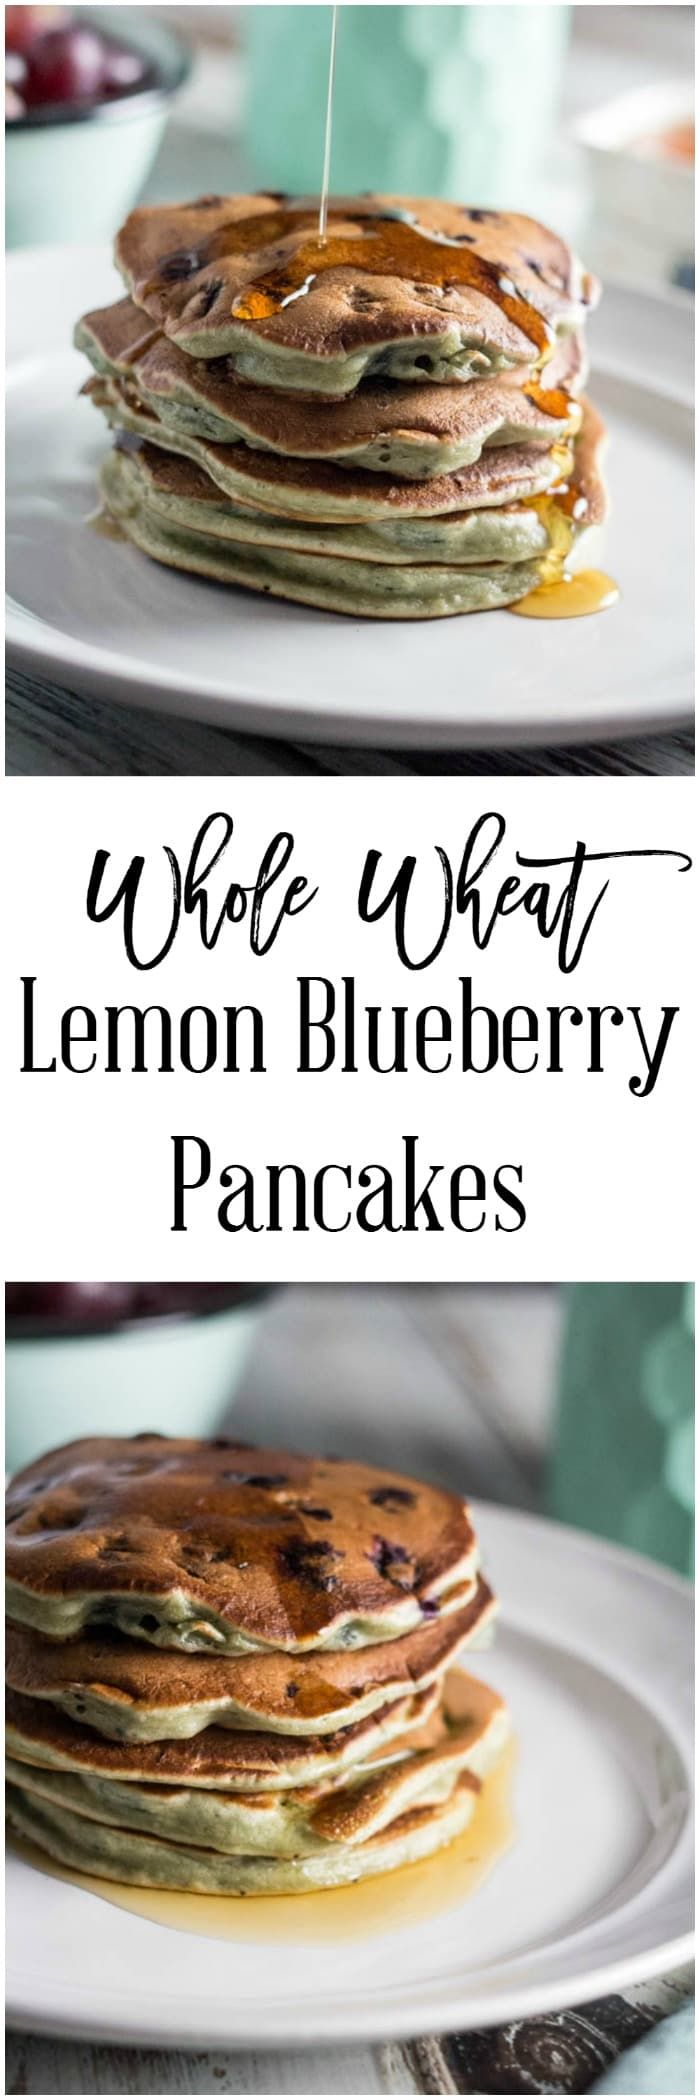 Breakfast doesn't have to mean spending hours in the kitchen.  These whole wheat lemon blueberry pancakes are great to make ahead over the weekend and freeze for quick and easy breakfasts during the week.  They are also only 6 SmartPoints per serving on Weight Watchers, 2 pancakes. via @dashofherbs